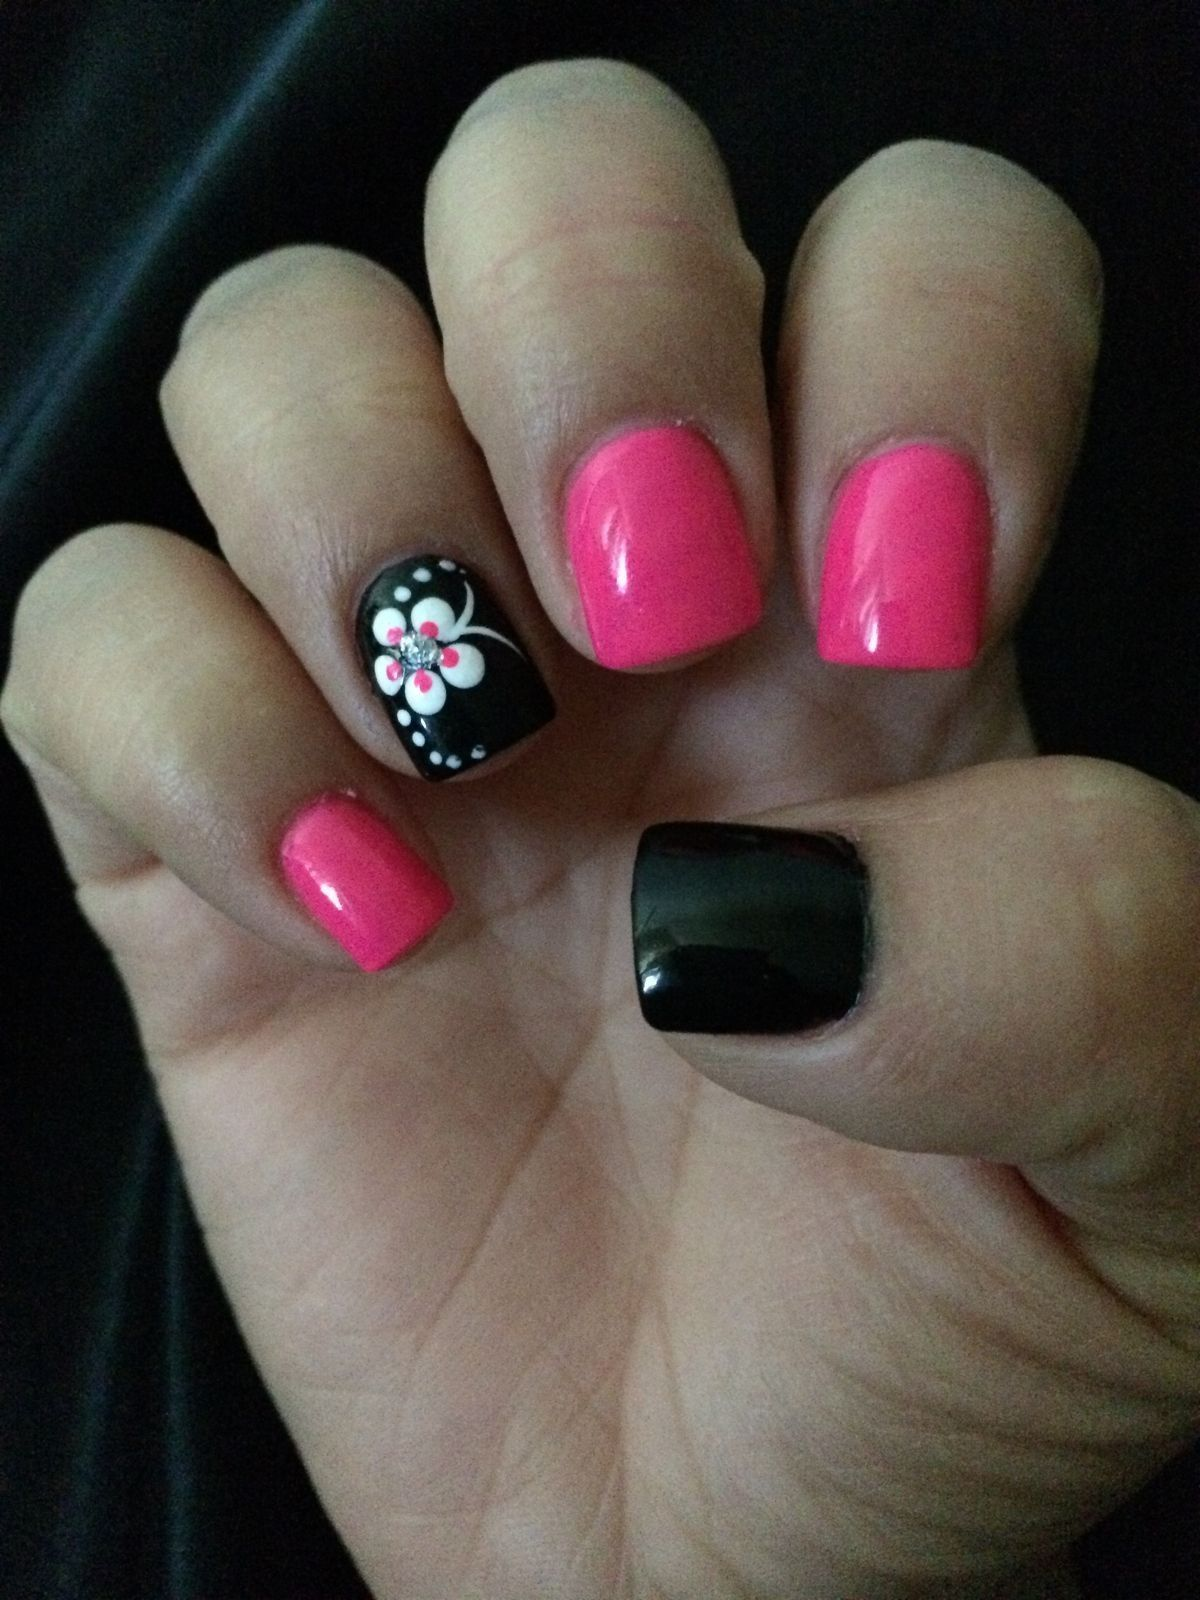 Pin by nichelle colorito michaud on hair beauty that i - Cute nail polish designs to do at home ...